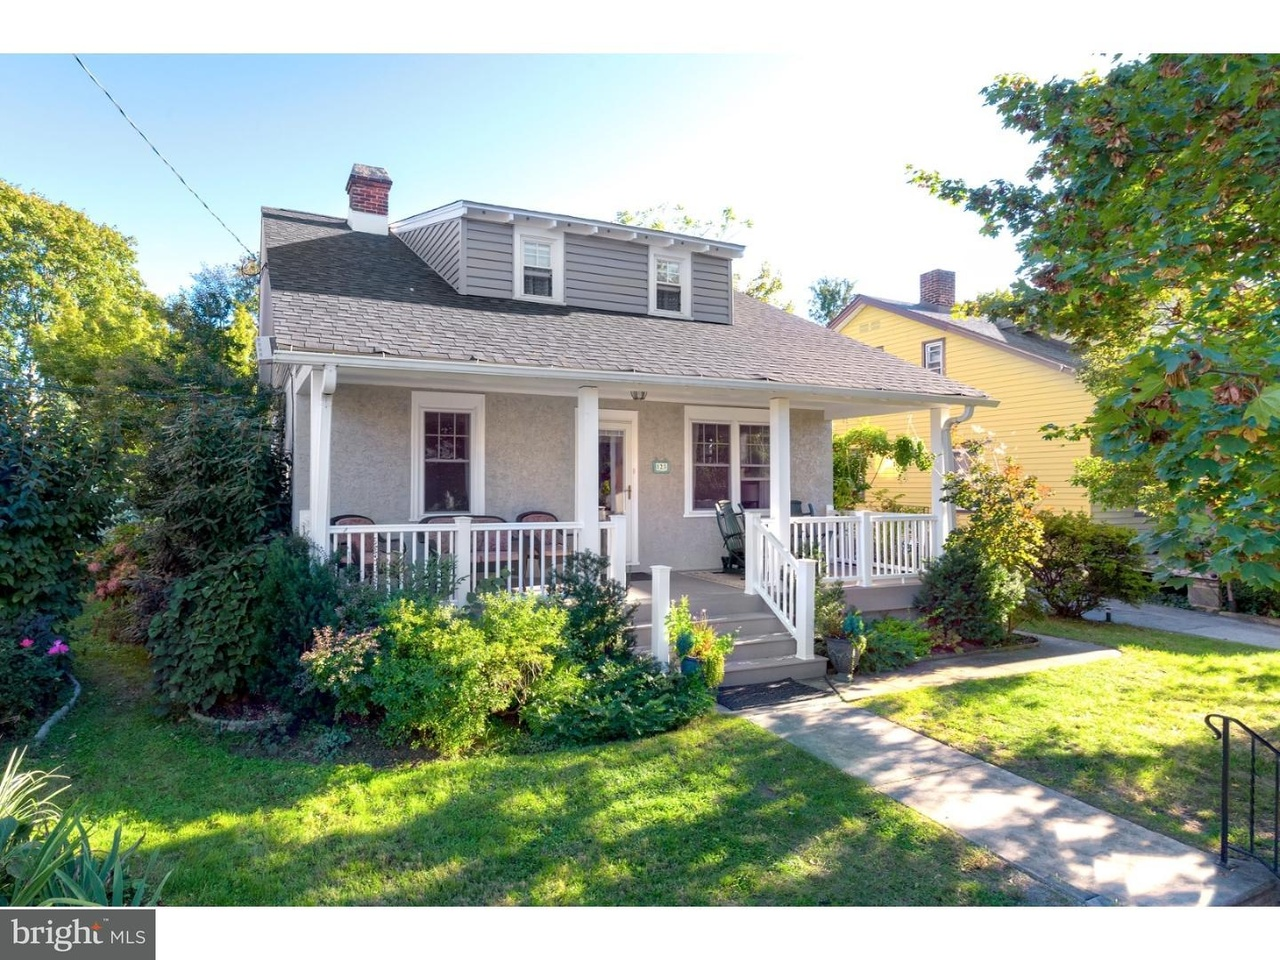 123 Campbell Ave Havertown Pa 19083 Mls 1003285815 Redfin